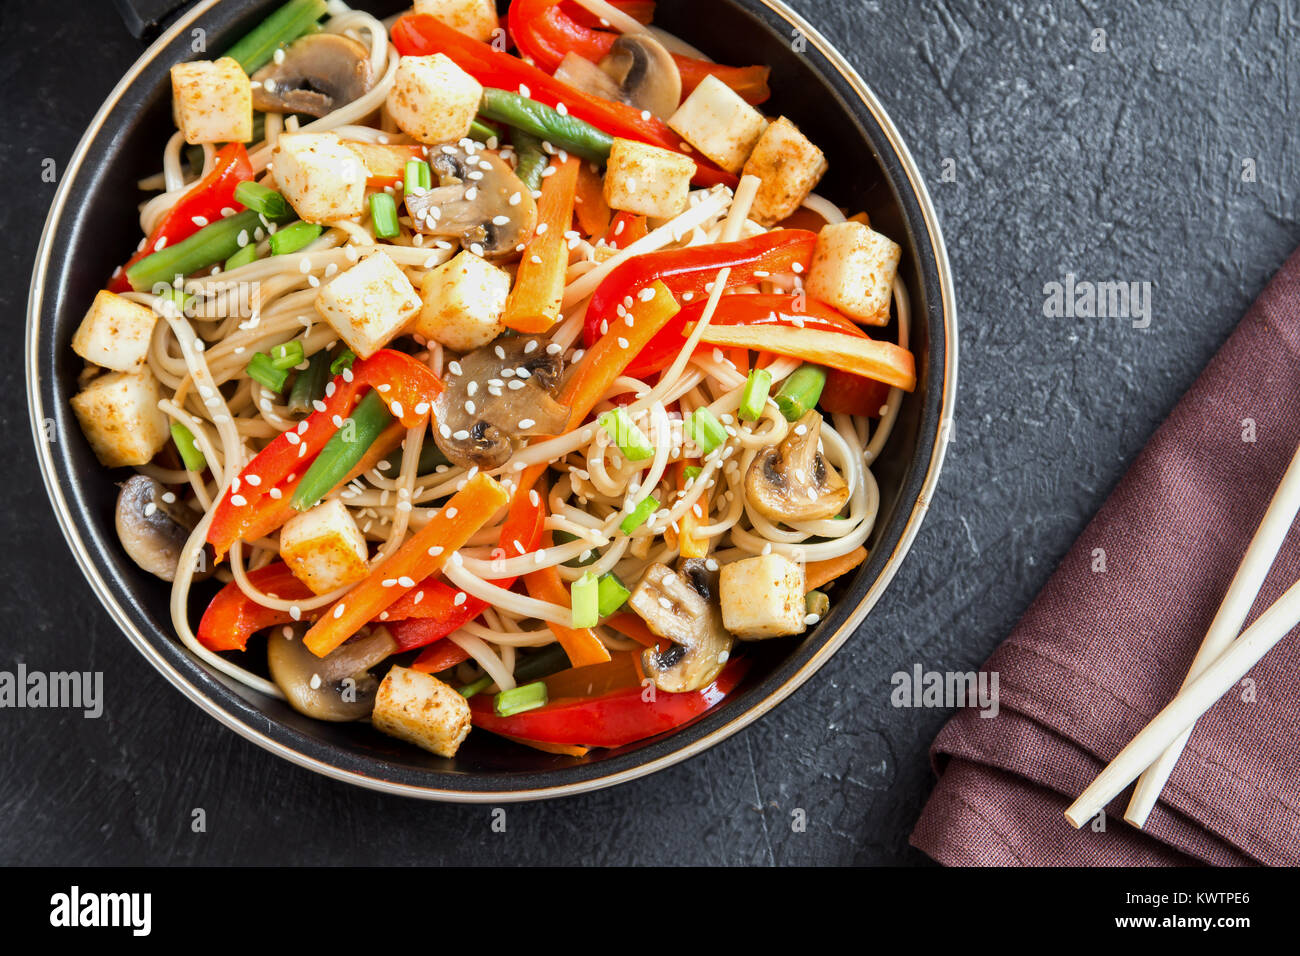 Stir fry with udon noodles, tofu, mushrooms and vegetables. Asian vegan vegetarian food, meal, stir fry in wok over - Stock Image